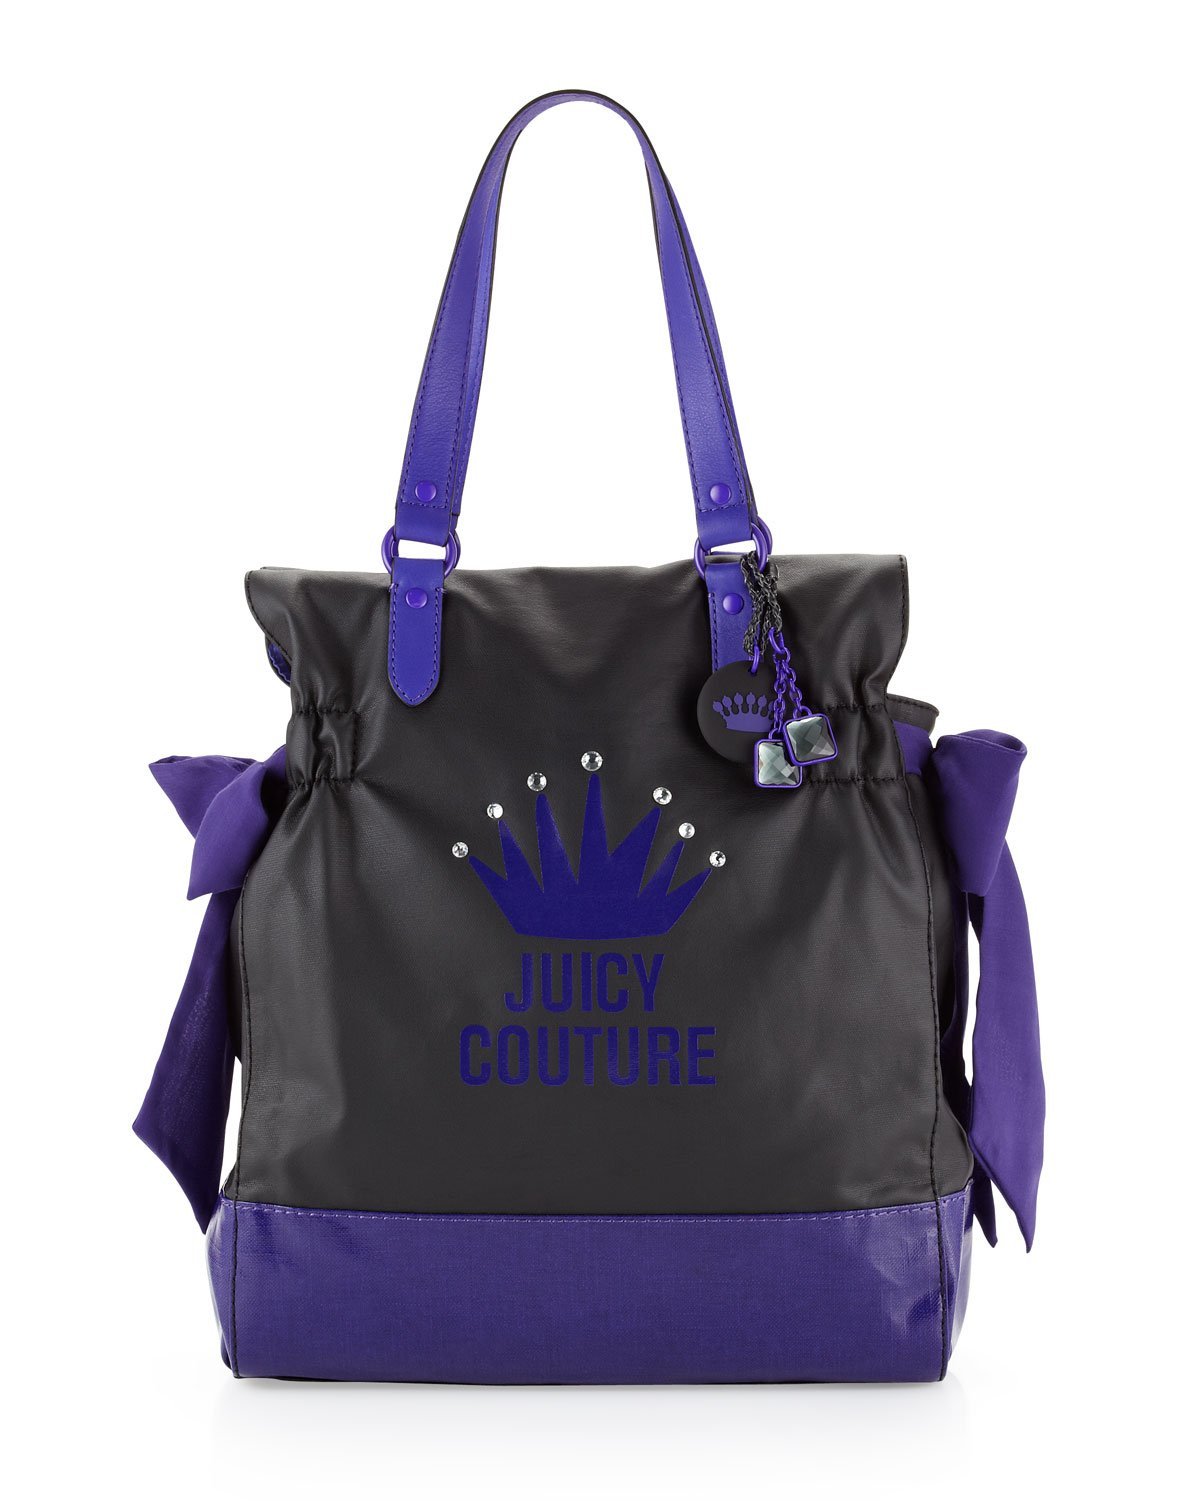 juicy couture canvas tote bag in purple black lyst. Black Bedroom Furniture Sets. Home Design Ideas